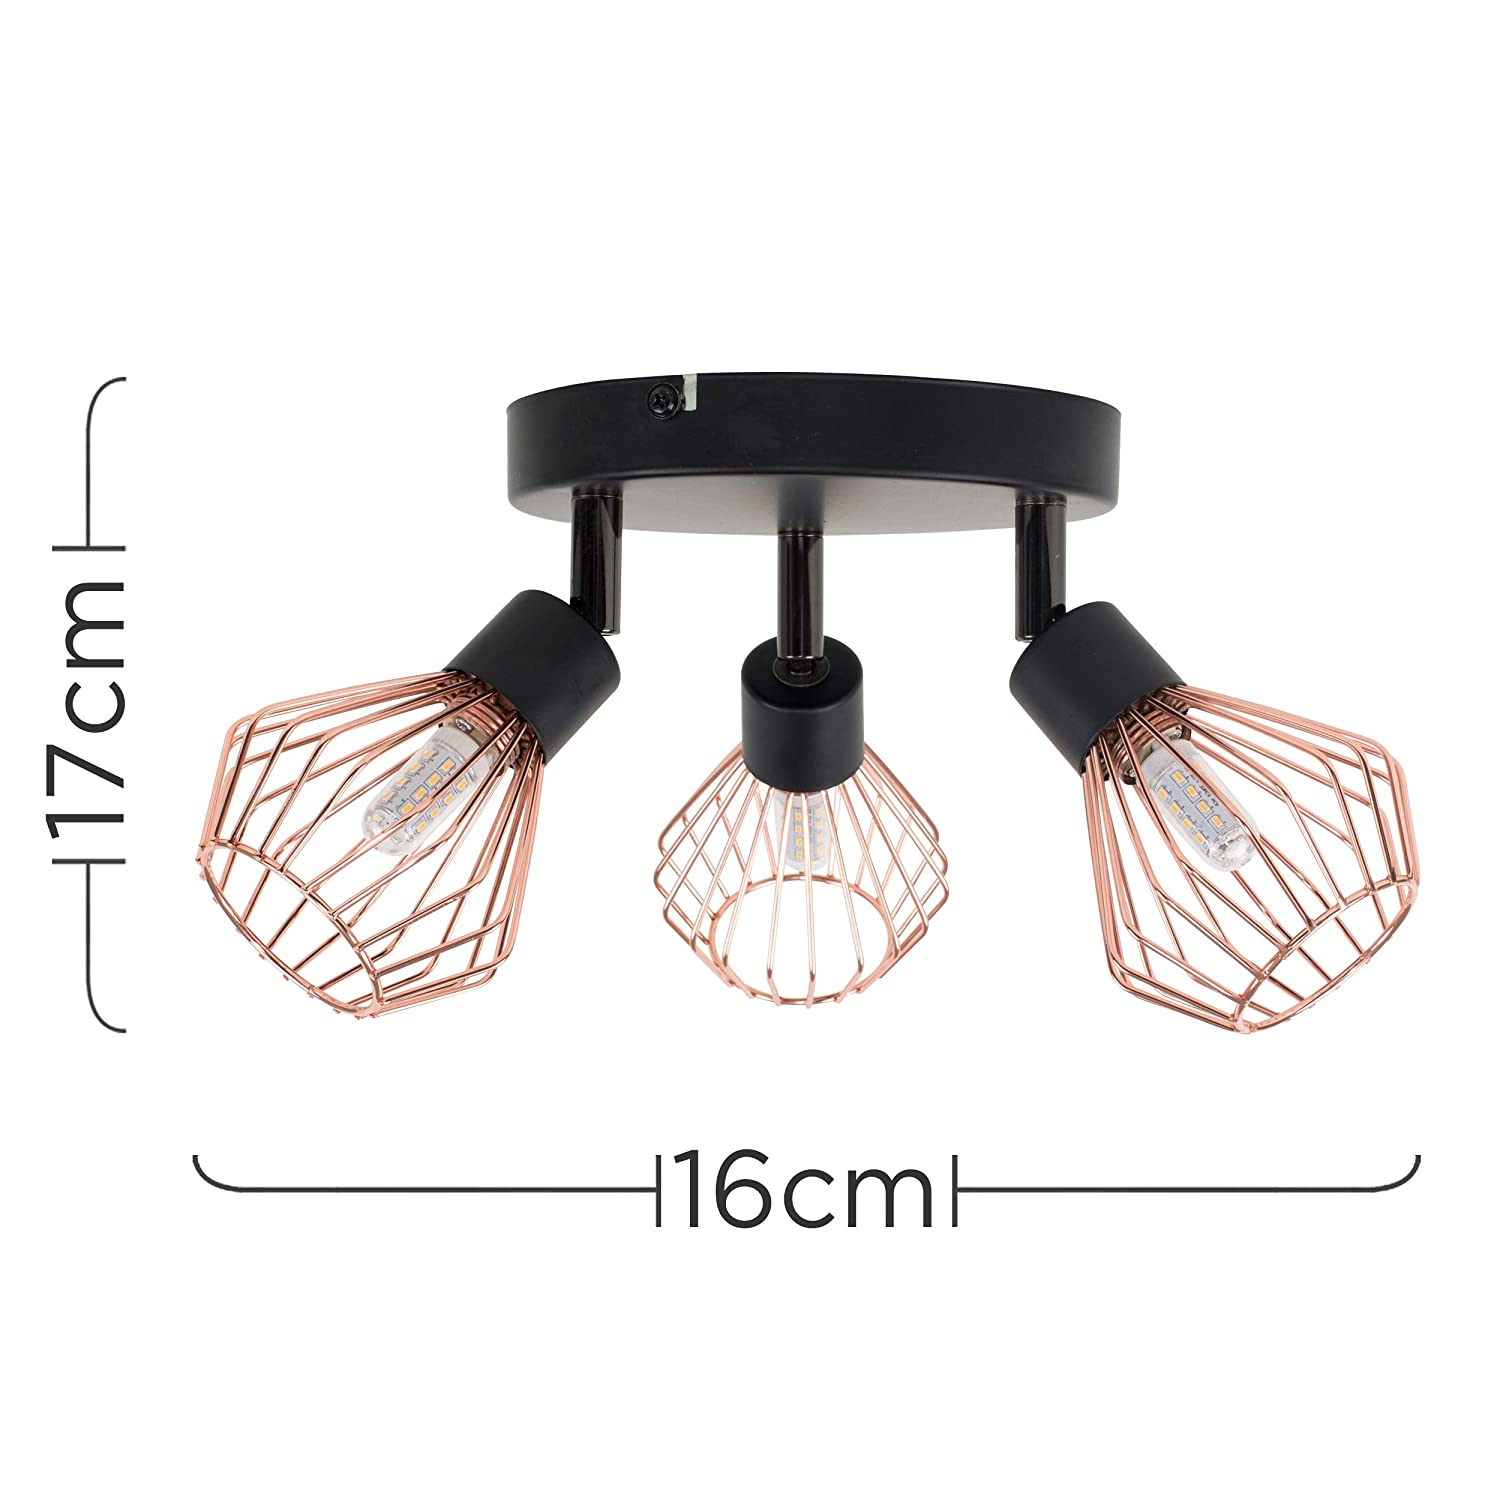 Retro Style 3 Way Black /& Copper Round Plate Adjustable Metal Basket Cage Design Ceiling Spotlight Complete with 3w G9 Bulbs 6500K Cool White